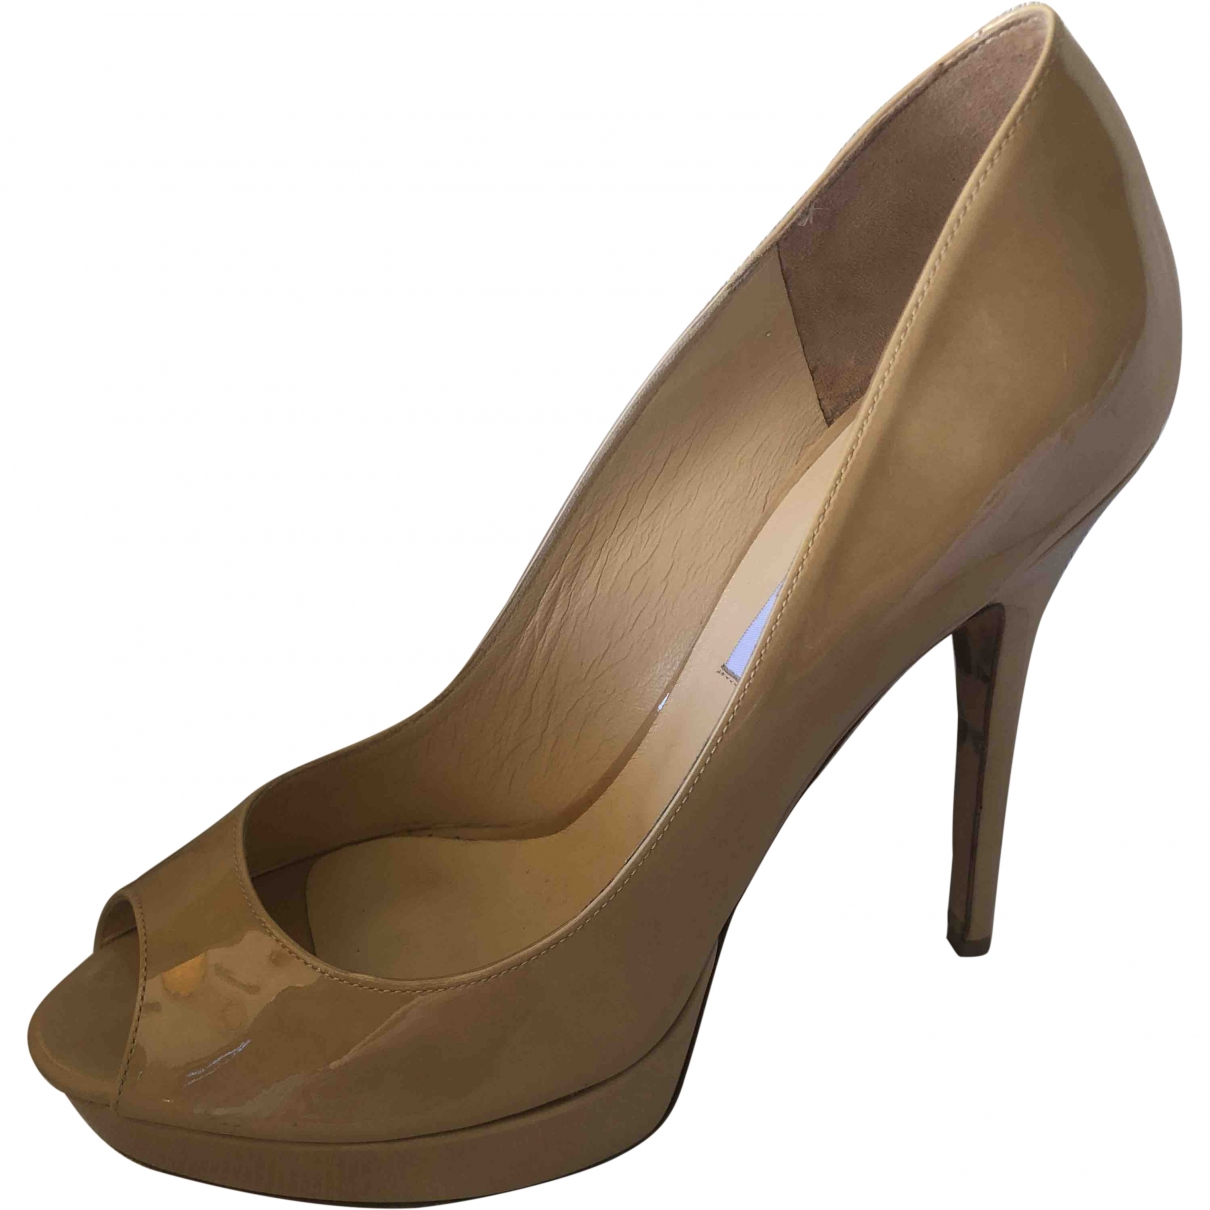 Jimmy Choo \N Camel Patent leather Heels for Women 40 EU